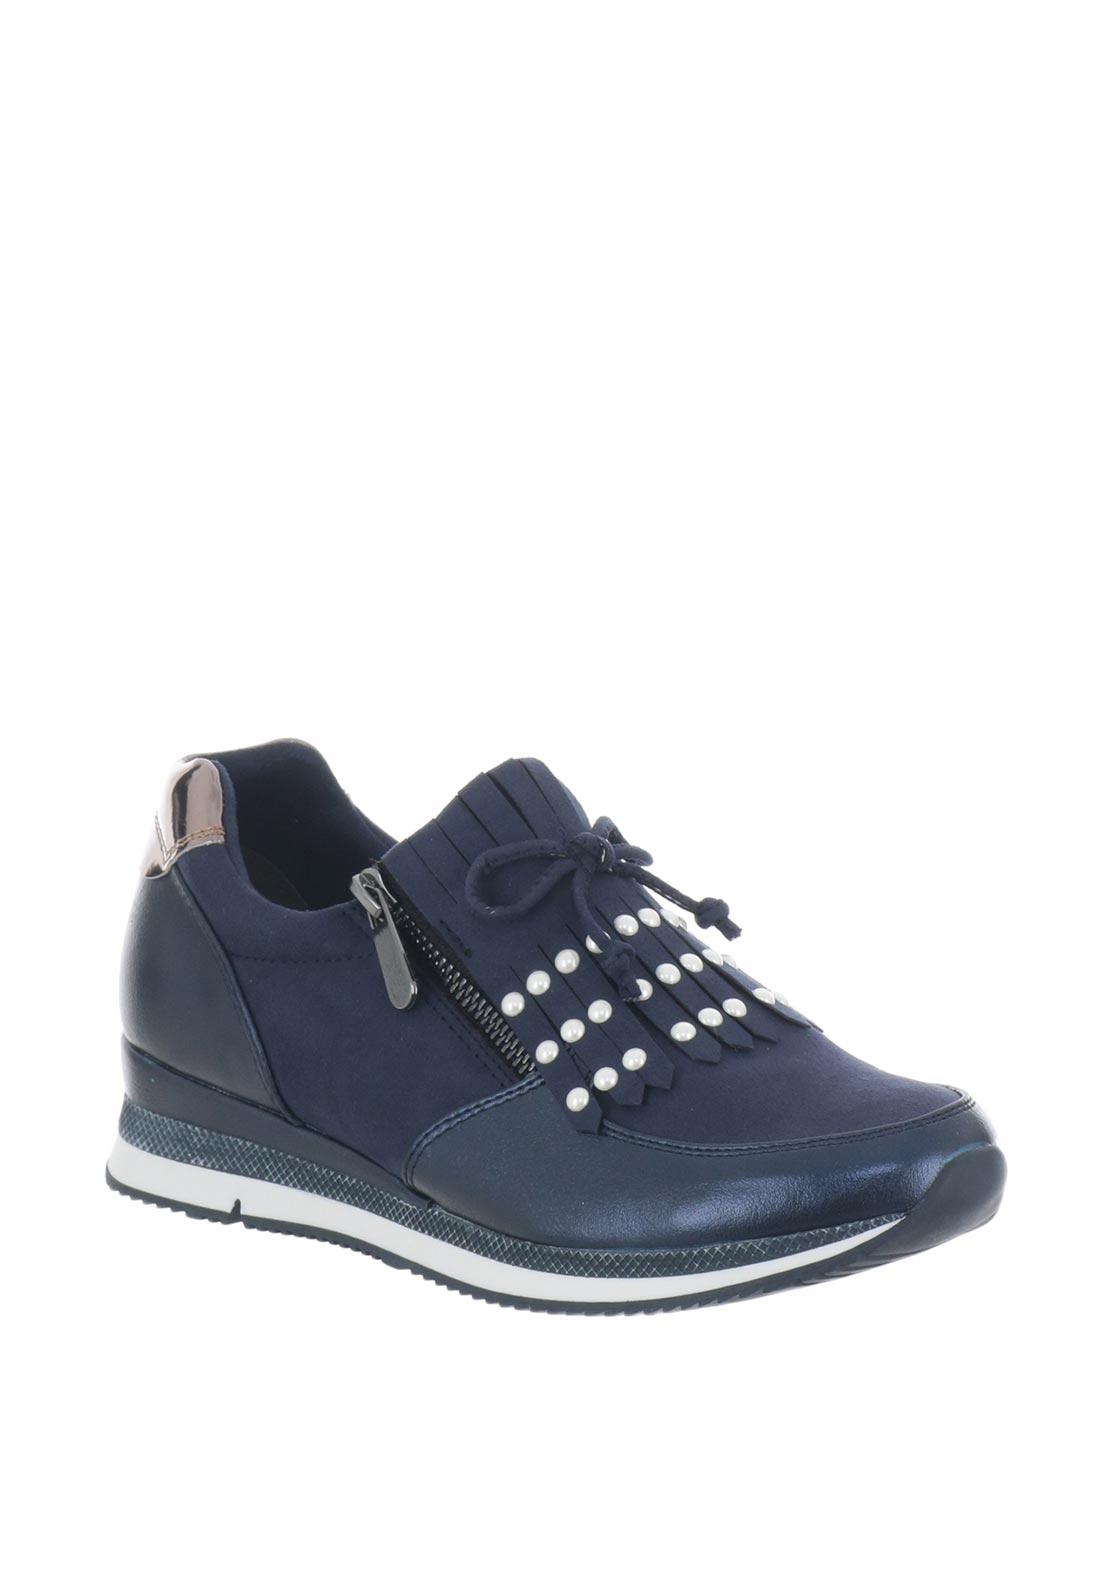 Marco Tozzi Pearl Fringed Trainers, Navy